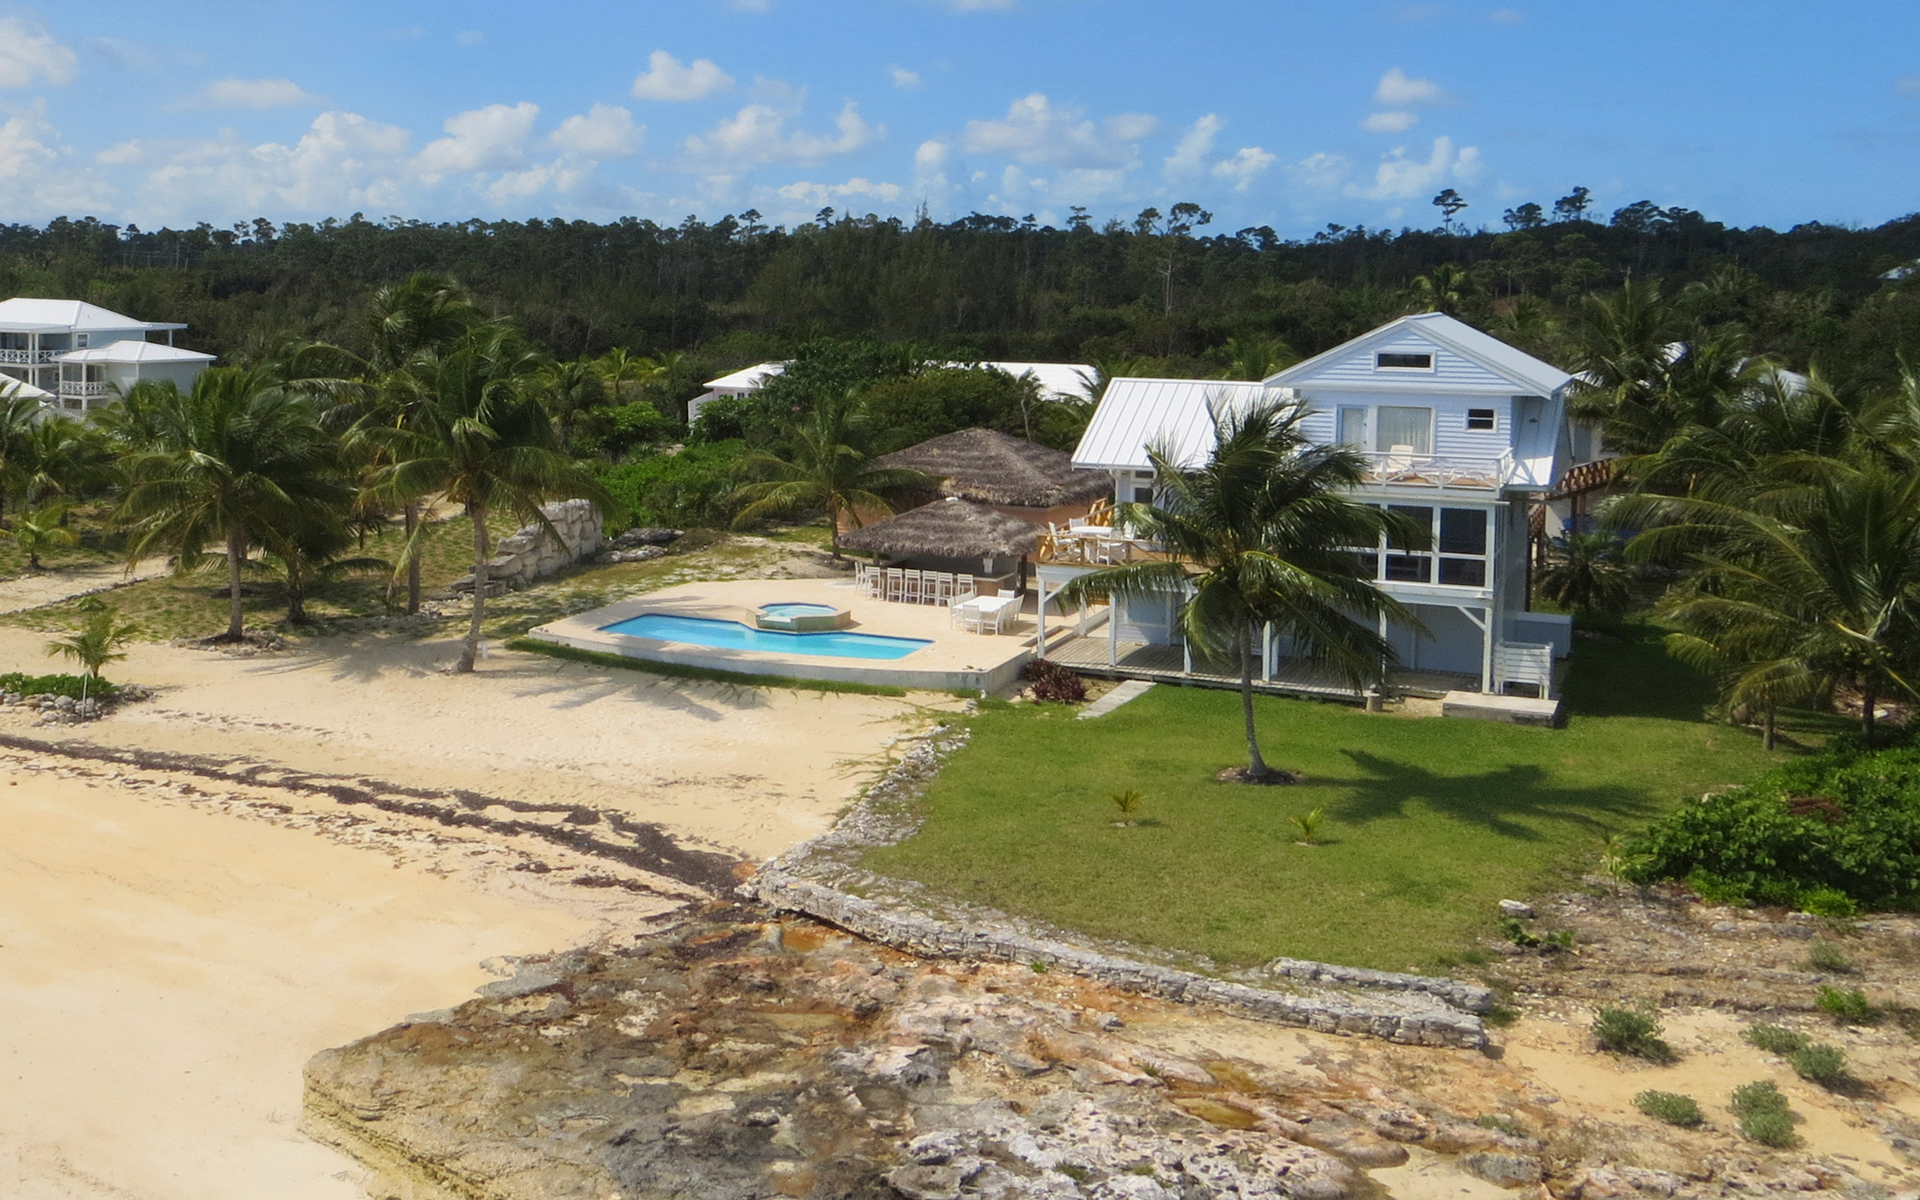 Single Family Home for Sale at Palmetto Beach Estate, Abaco Island, Bahamas. Turnkey Estate Turtle Rocks, Abaco, Bahamas